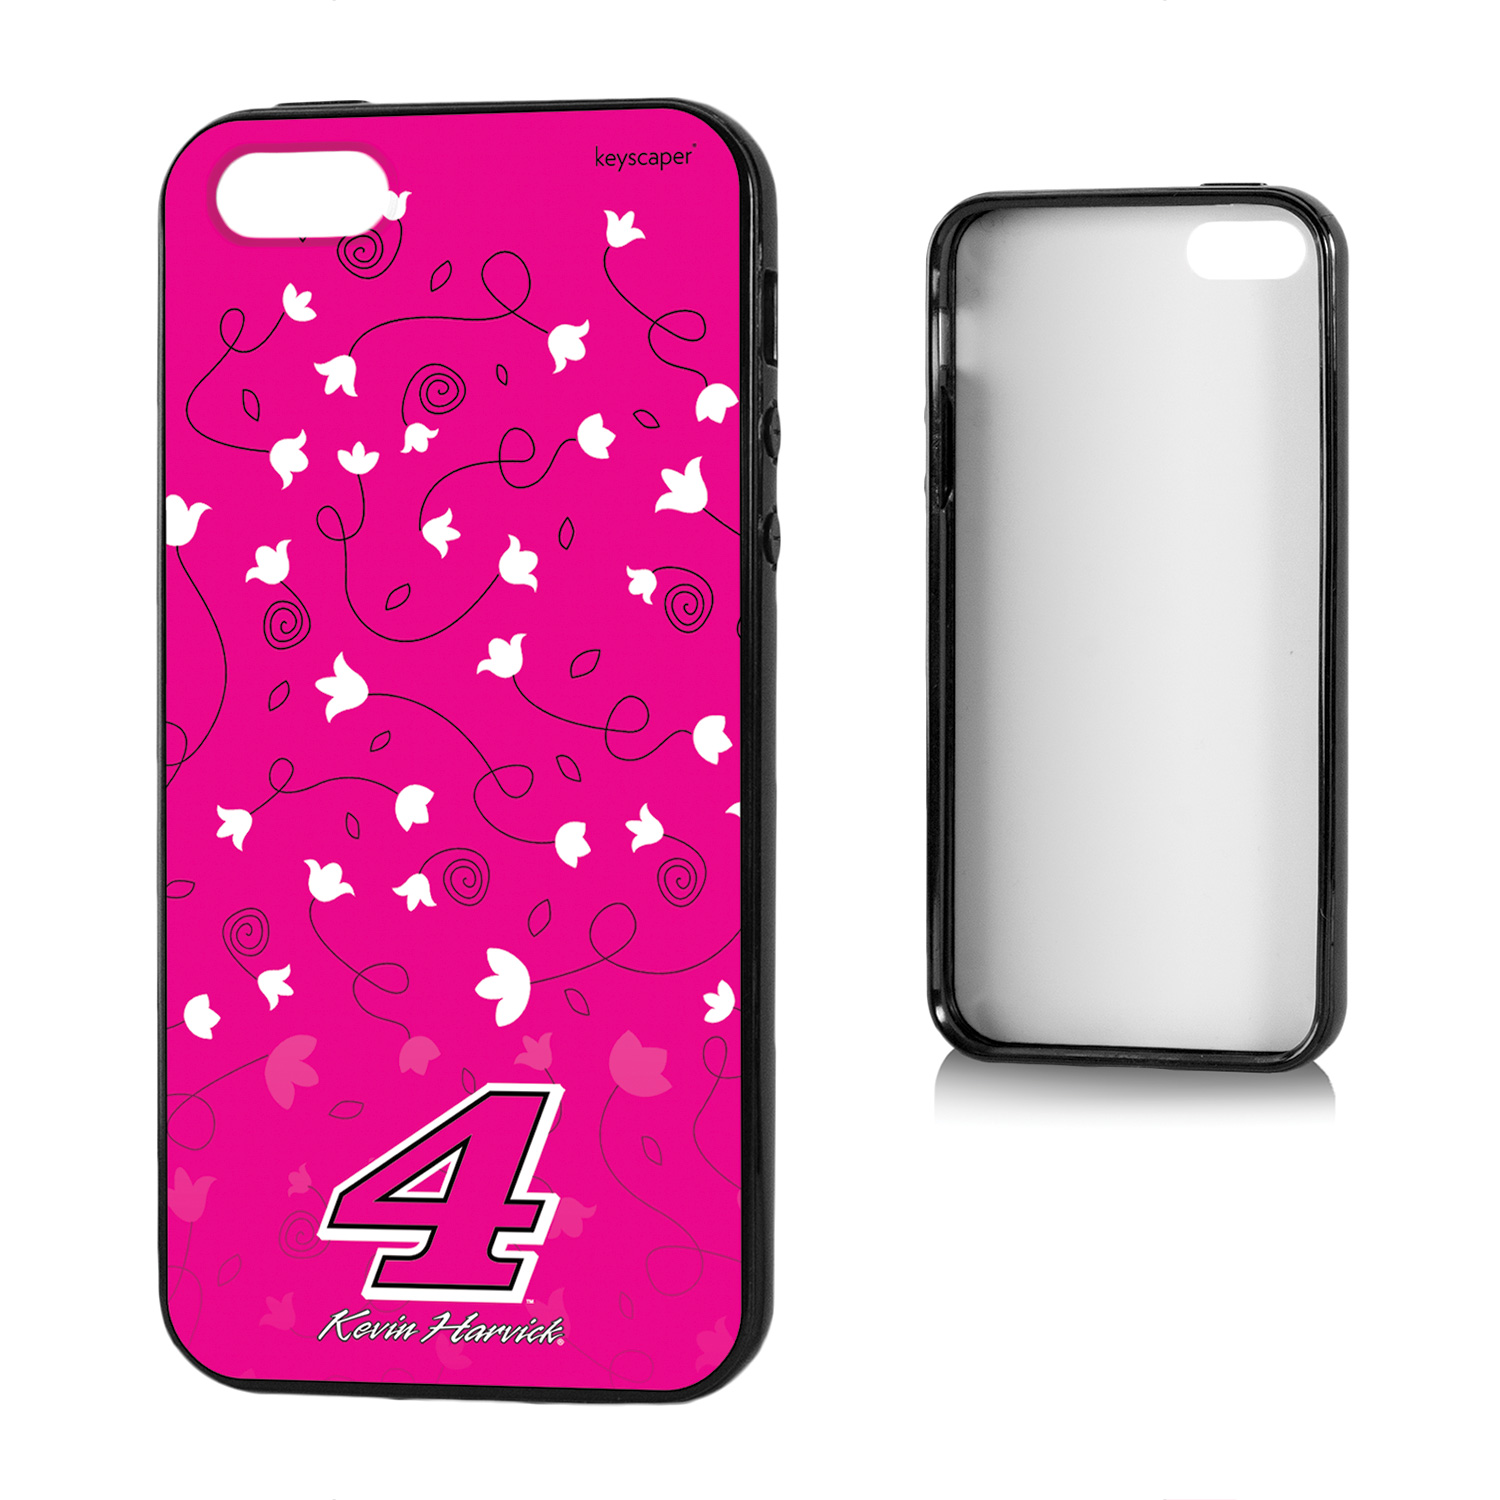 Kevin Harvick iPhone 5 and iPhone 5s Bumper Case